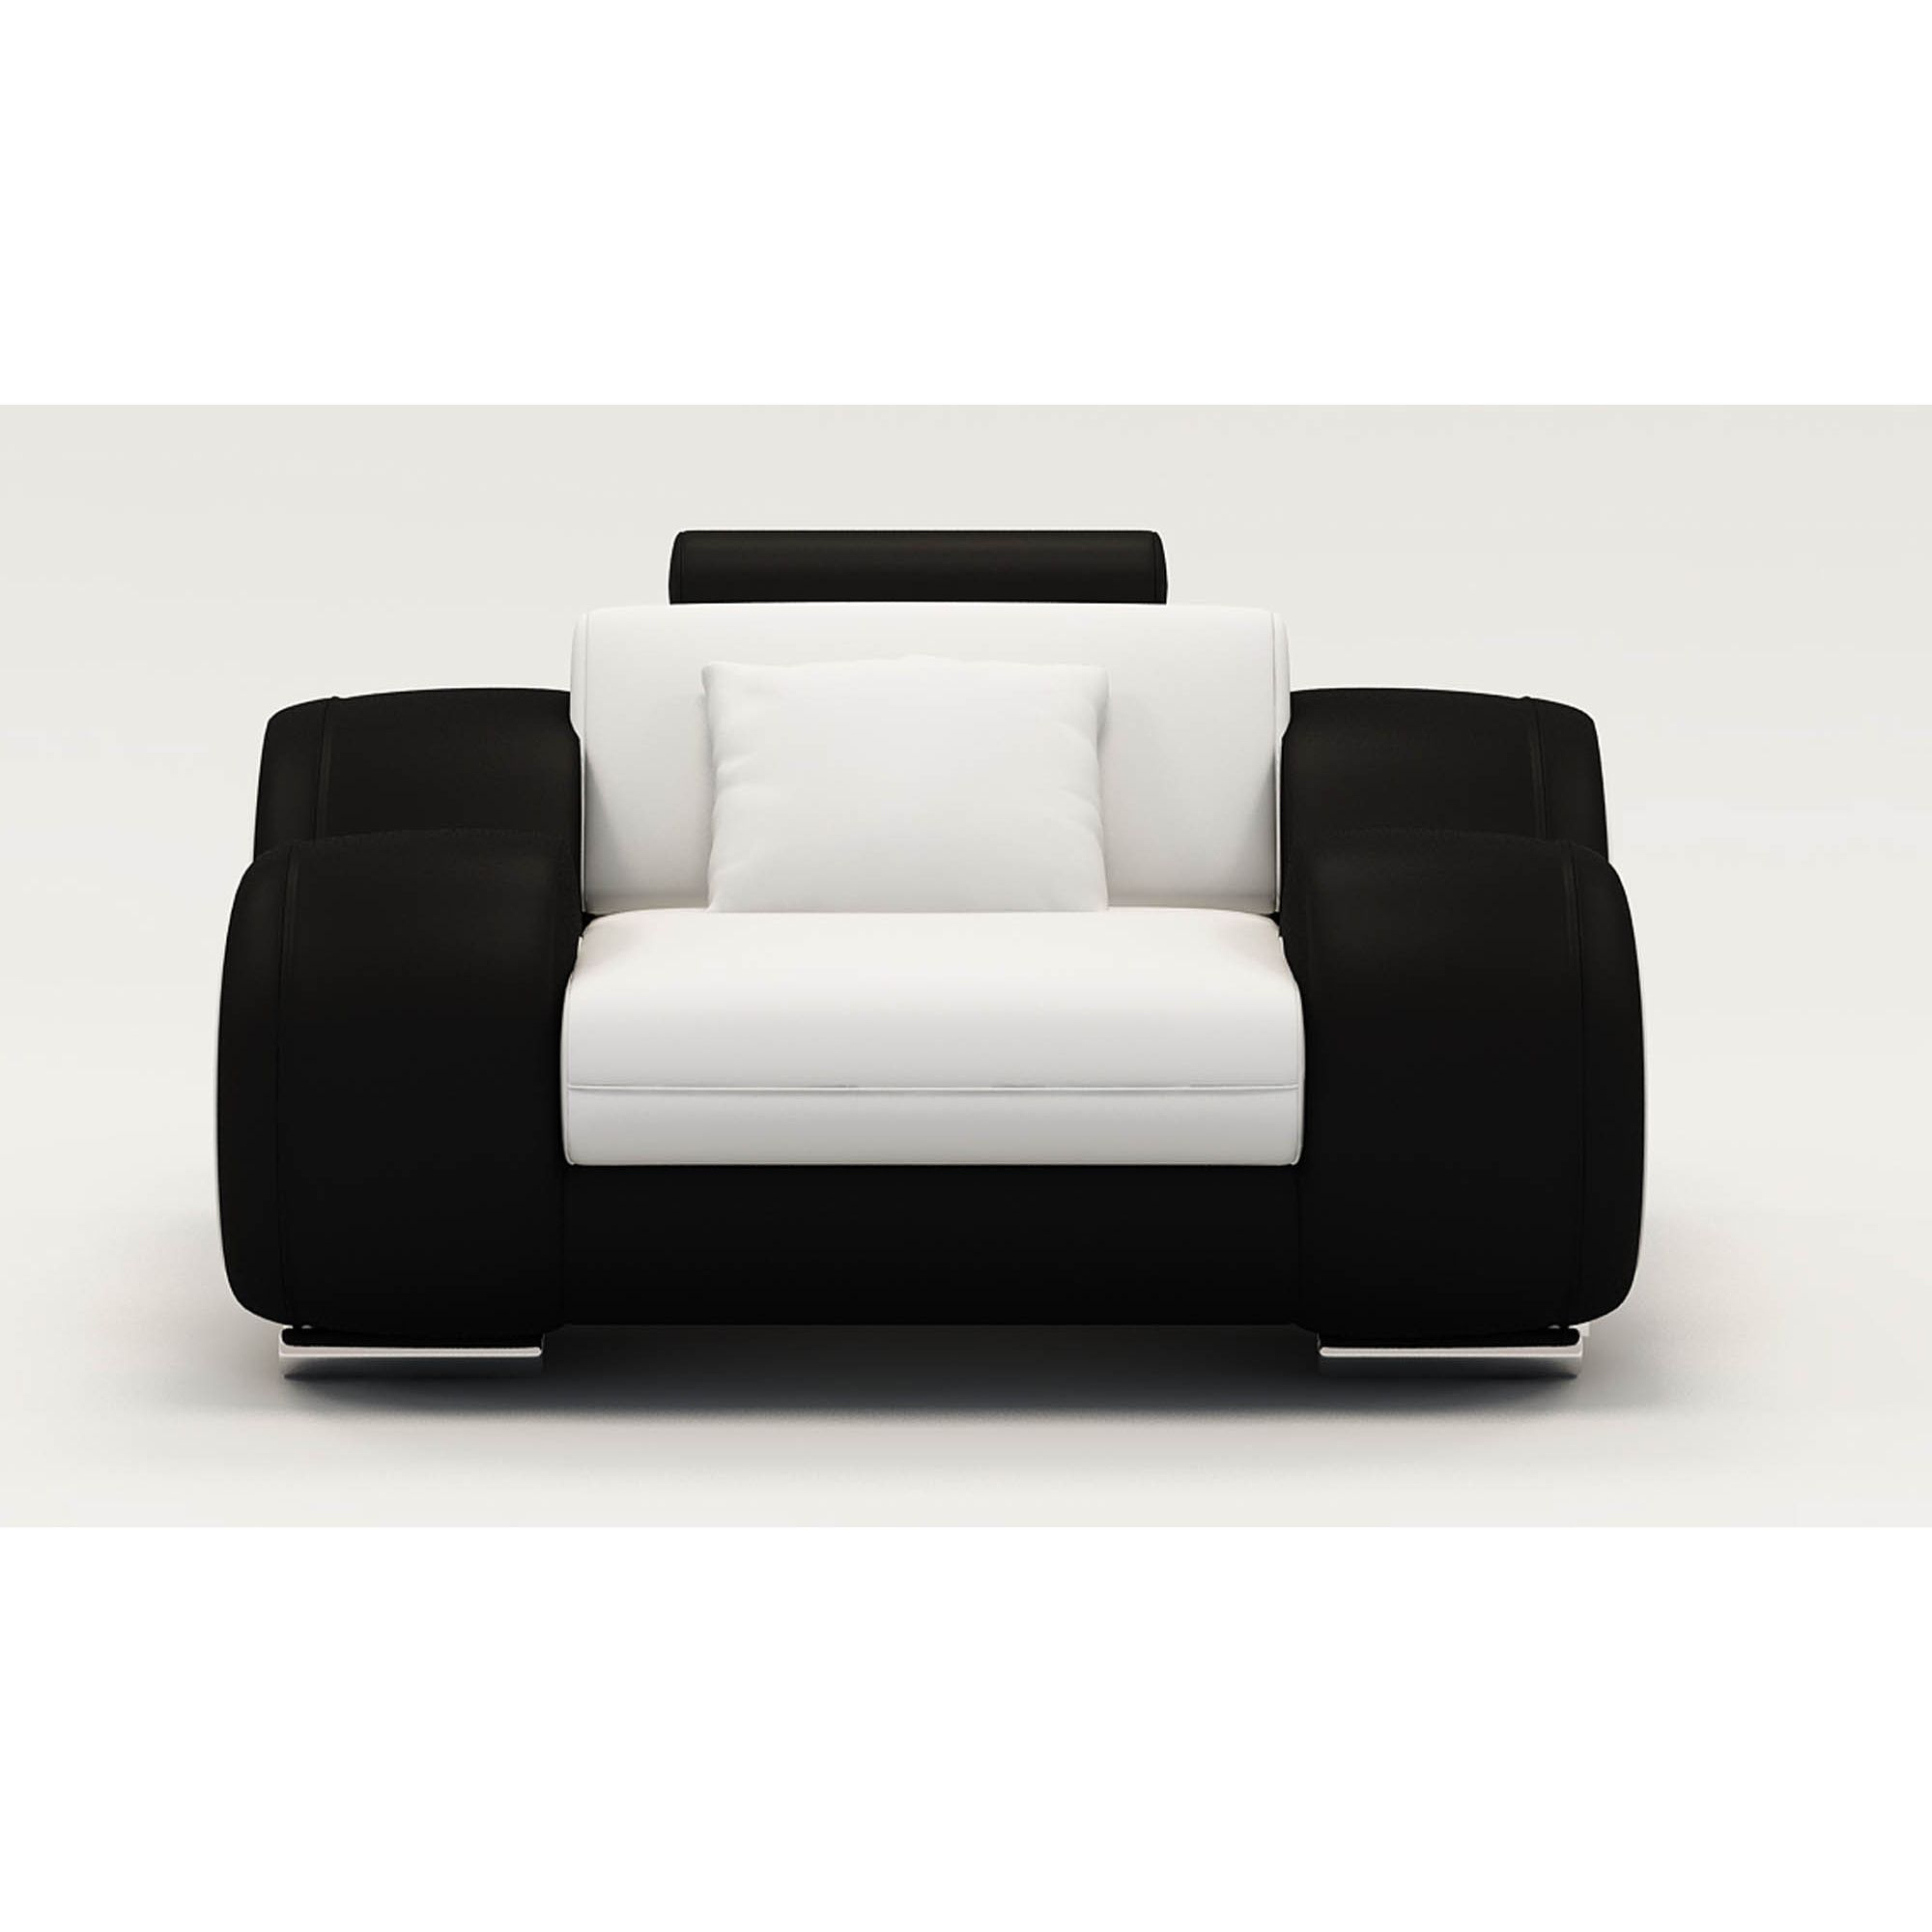 Deco in paris ensemble canape relax design 3 2 1 places for Fauteuil banquette design